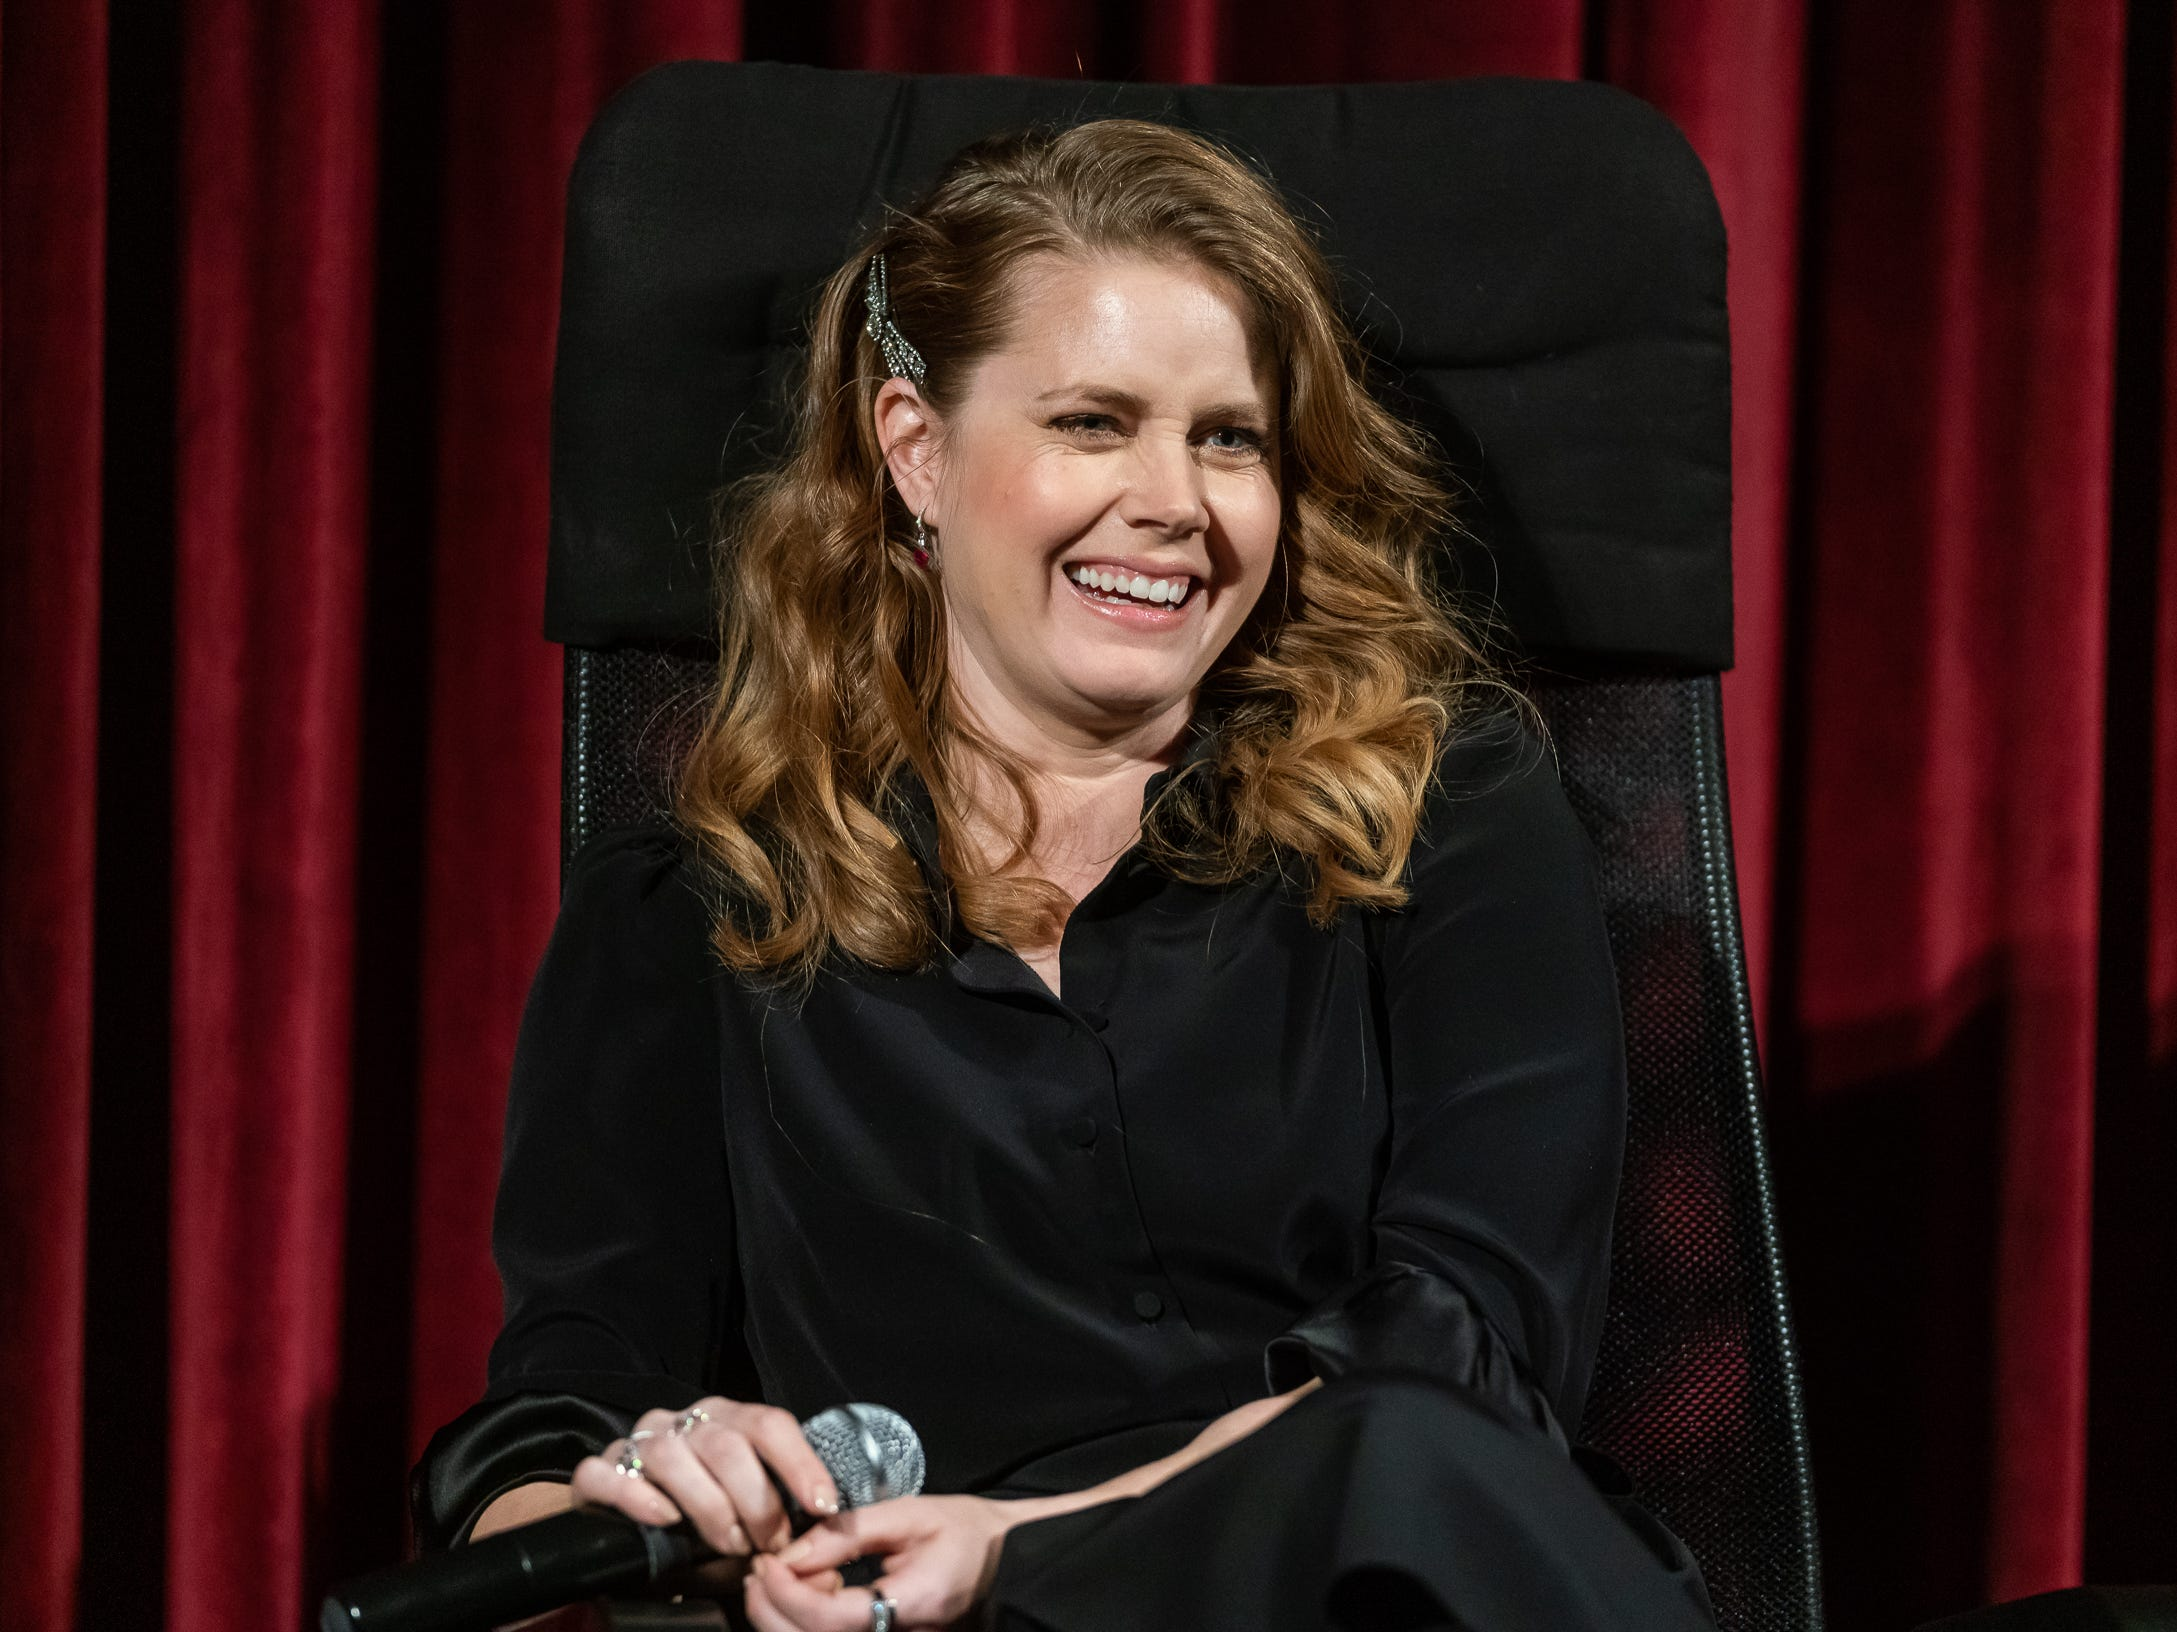 NEW YORK, NEW YORK - DECEMBER 18:  Actress Amy Adams attends The Academy of Motion Pictures Arts & Sciences Hosts an Official Academy Screening of 'Vice' at MOMA - Celeste Bartos Theater on December 18, 2018 in New York City. (Photo by Mark Sagliocco/Getty Images for The Academy Of Motion Picture Arts & Sciences) ORG XMIT: 775264161 ORIG FILE ID: 1084377446